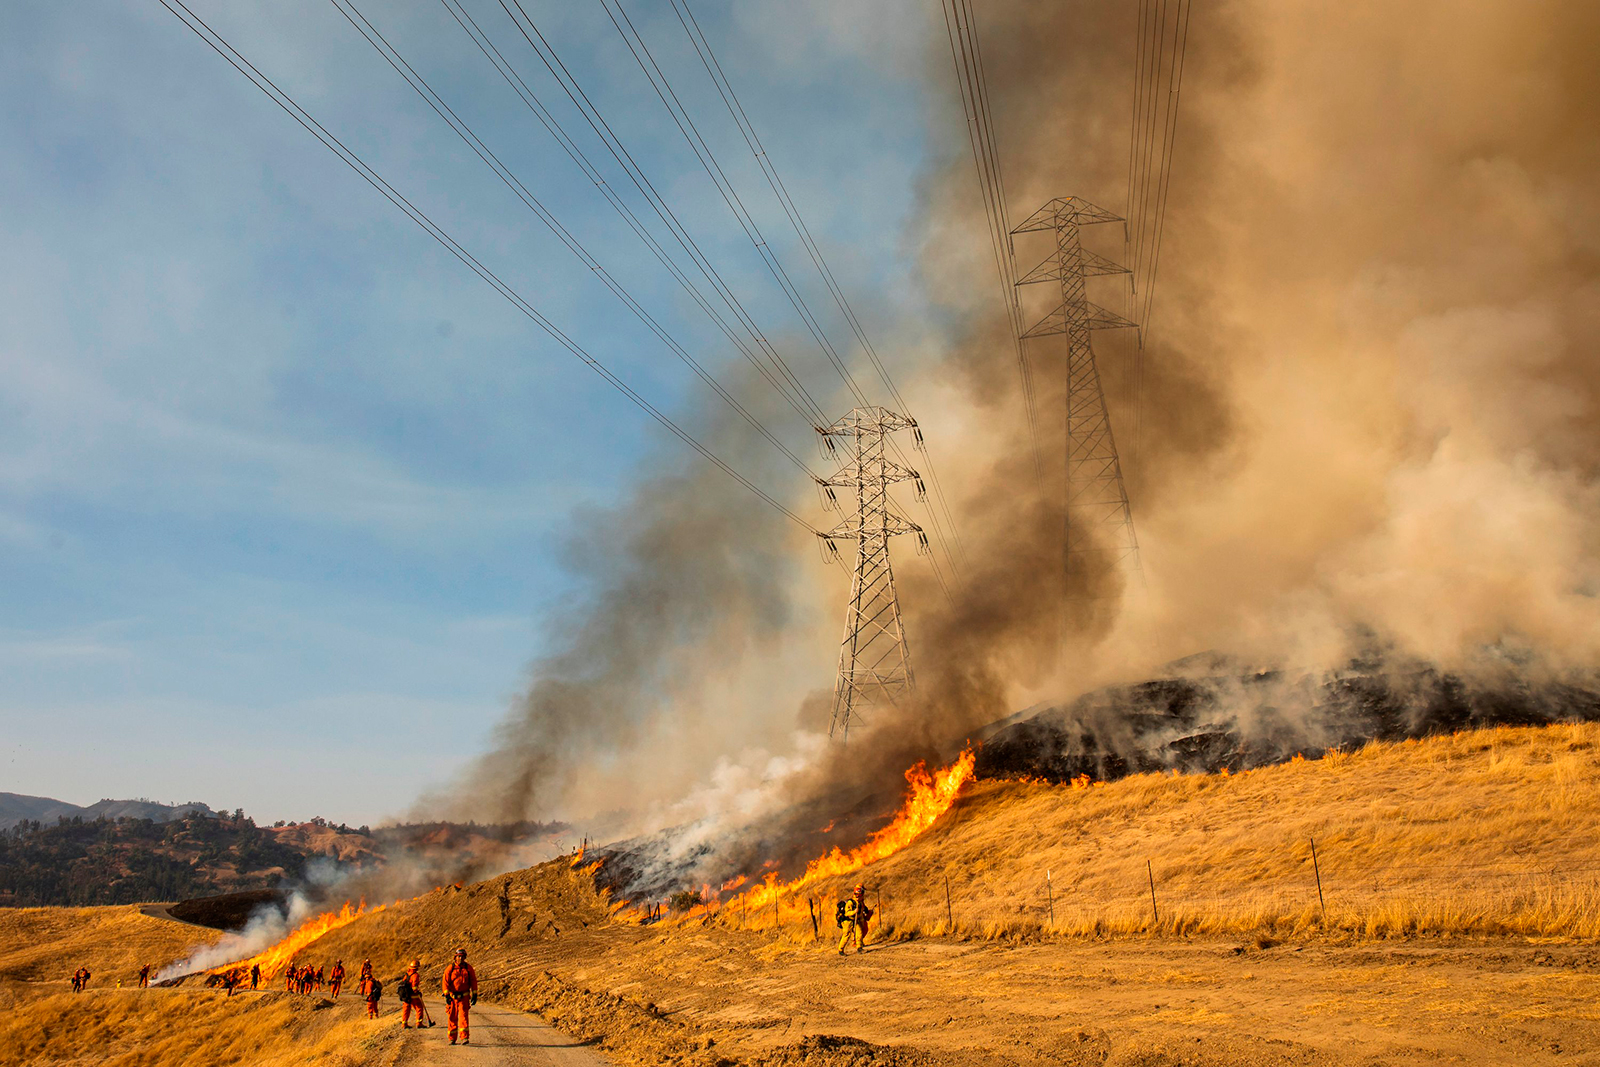 California utility PG&E facing criminal charges over the state's largest 2019 wildfire